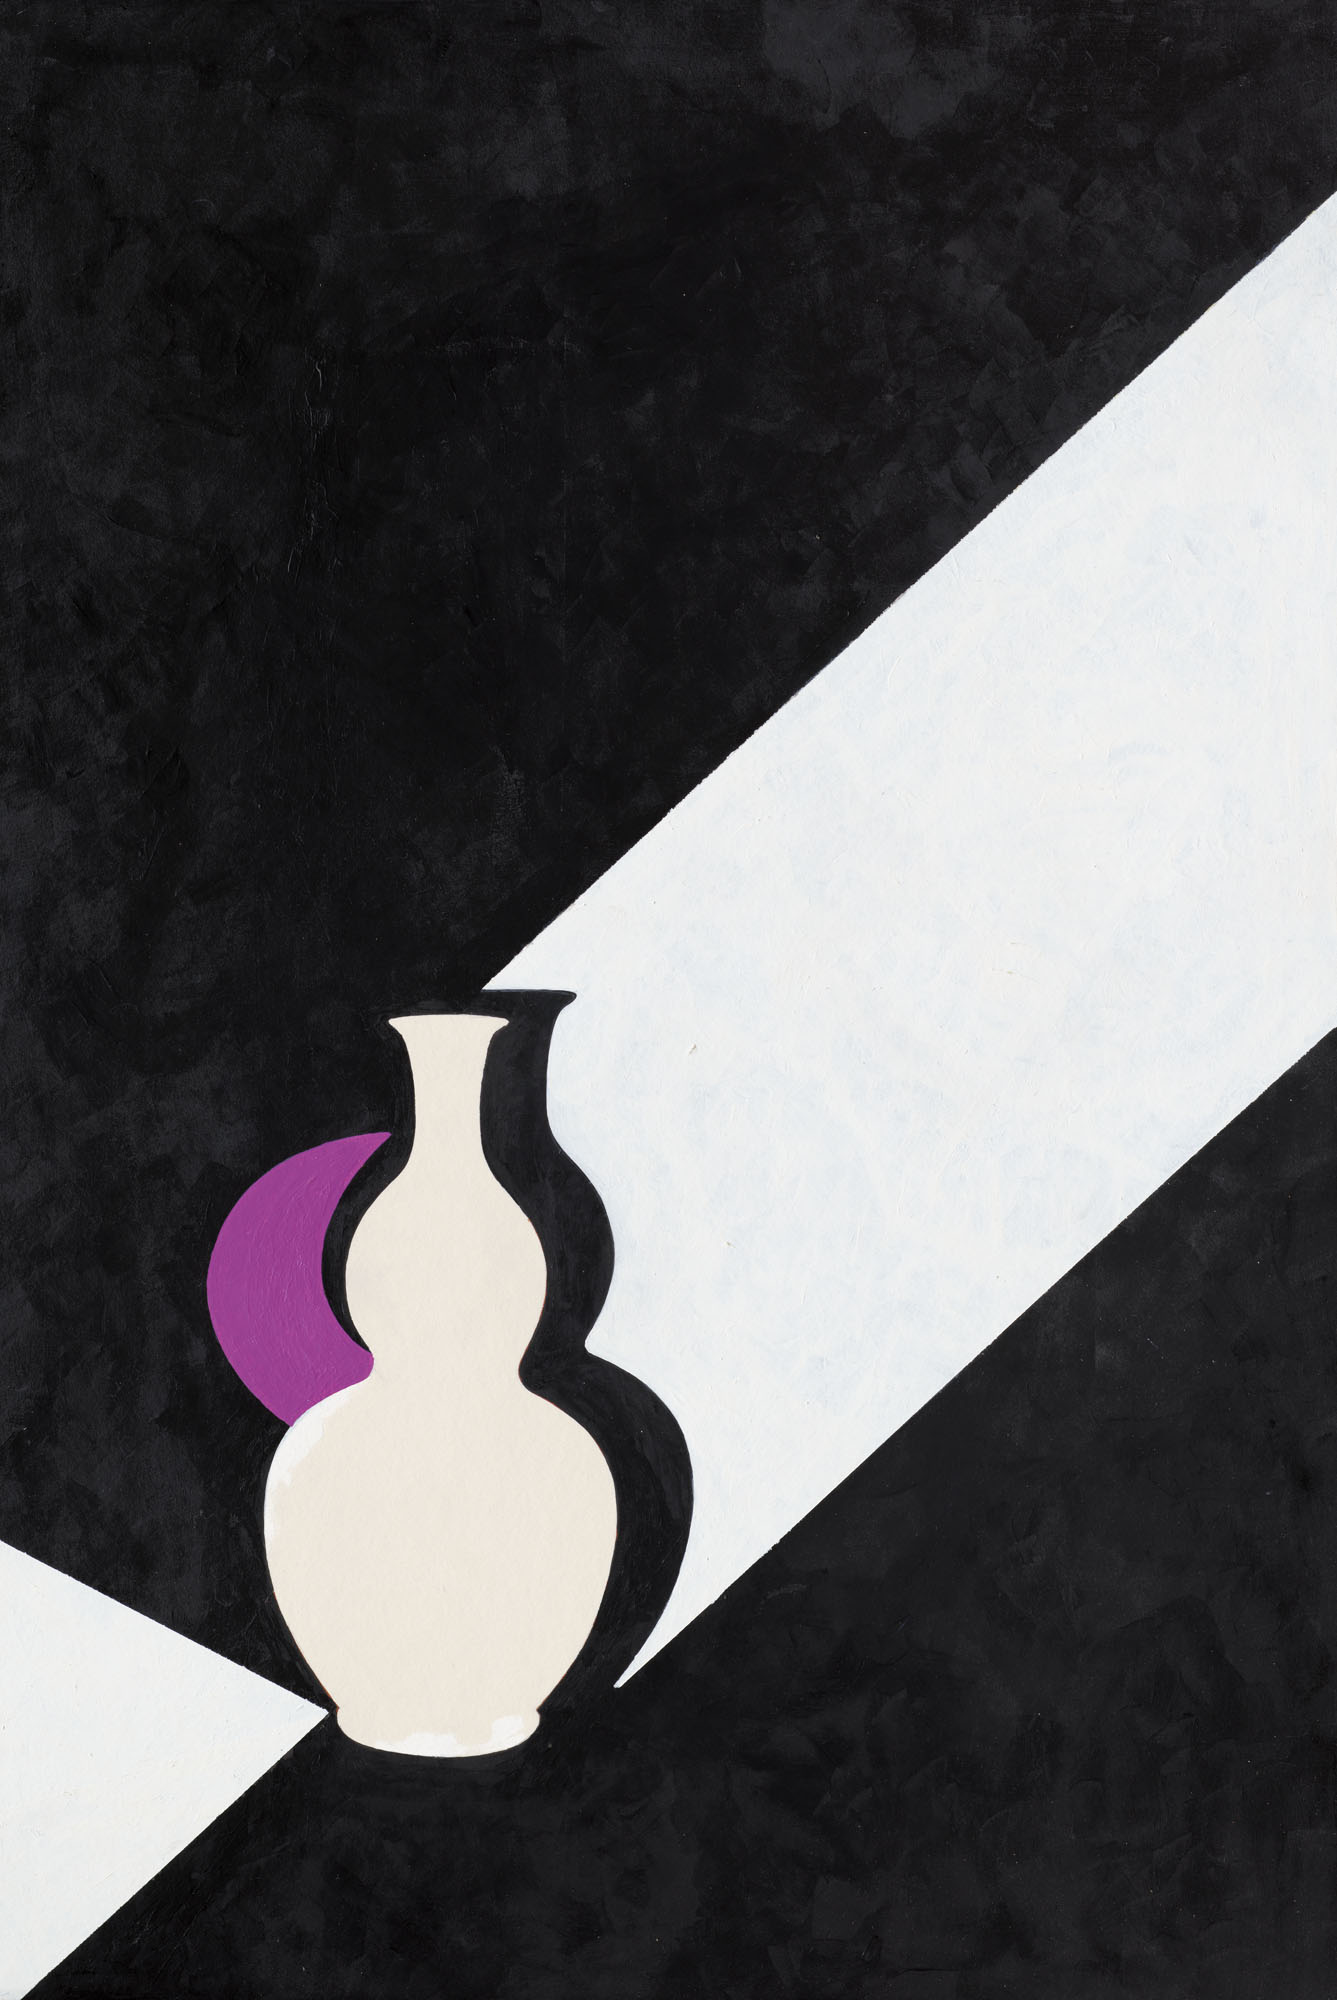 Patrick Caulfield (1936-2005), Arita Flask Black, 1989. Acrylic on board. 30½ x 20½ in (77.5 x 52 cm). Estimate £25,000-35,000. Offered in the Modern British Art Day Sale on 2 March 2021at Christies in London